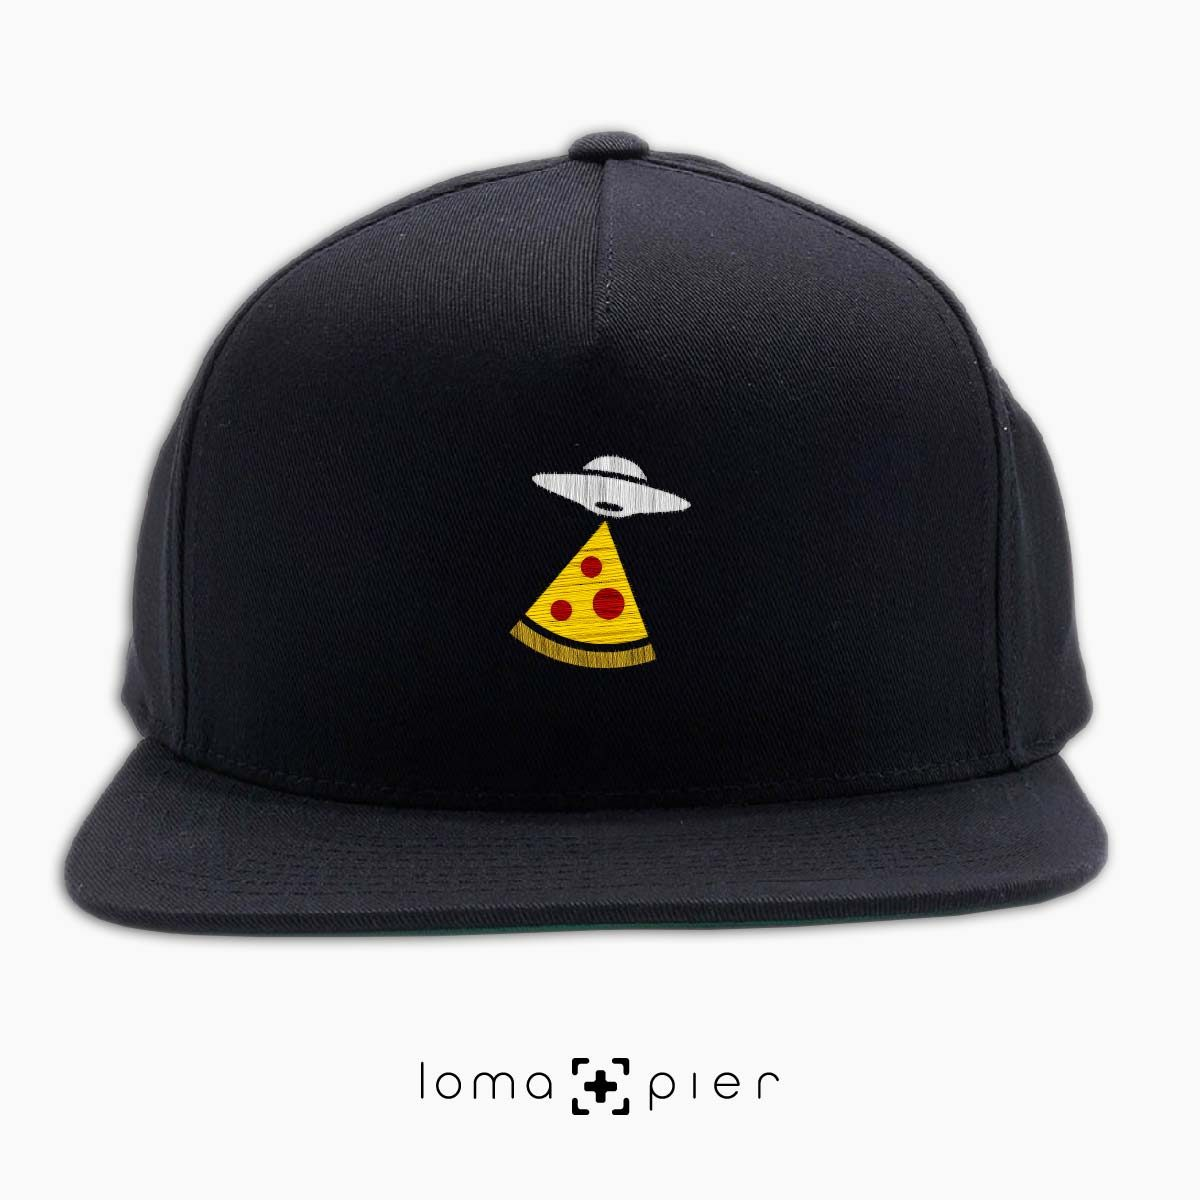 UFO PIZZA icon embroidered on a black classic snapback hat with multicolor thread by loma+pier hat store